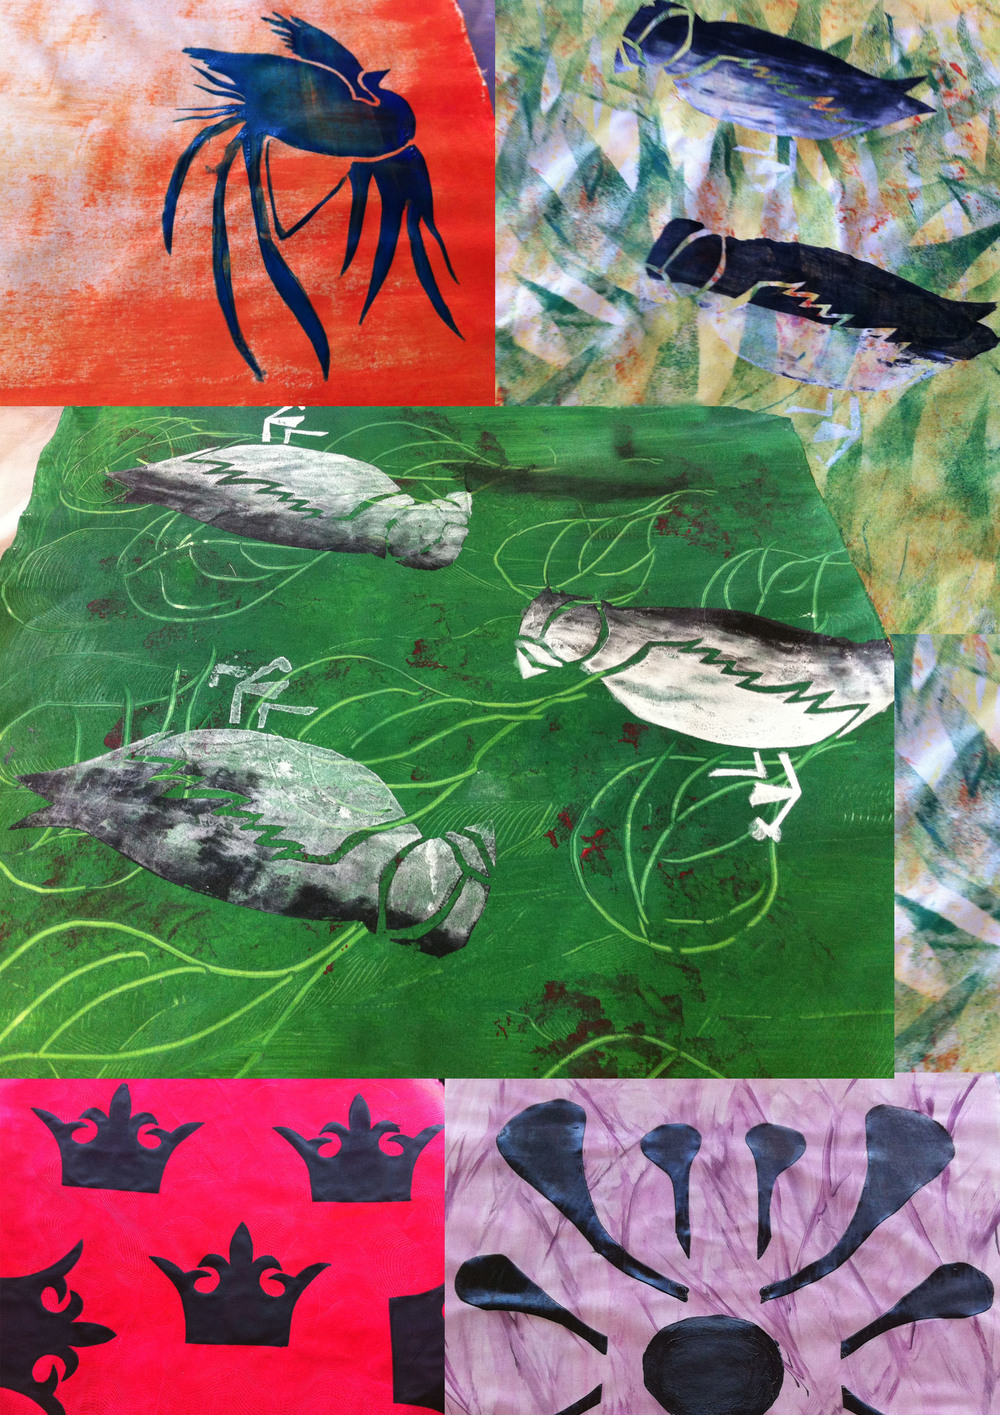 Pattern, print and texture will be explored and developed using a variety of printing techniques. A collection of fabric and paper samples will be produced using lino printing, transfer printing, stencil and screen-printing. This course is aimed at beginners and intermediates.    Tuesdays 14, 21 May, 4, 11, 18 June. 10.30am-12.30pm | £95 including all materials.   For further details contact www.makingspace.org